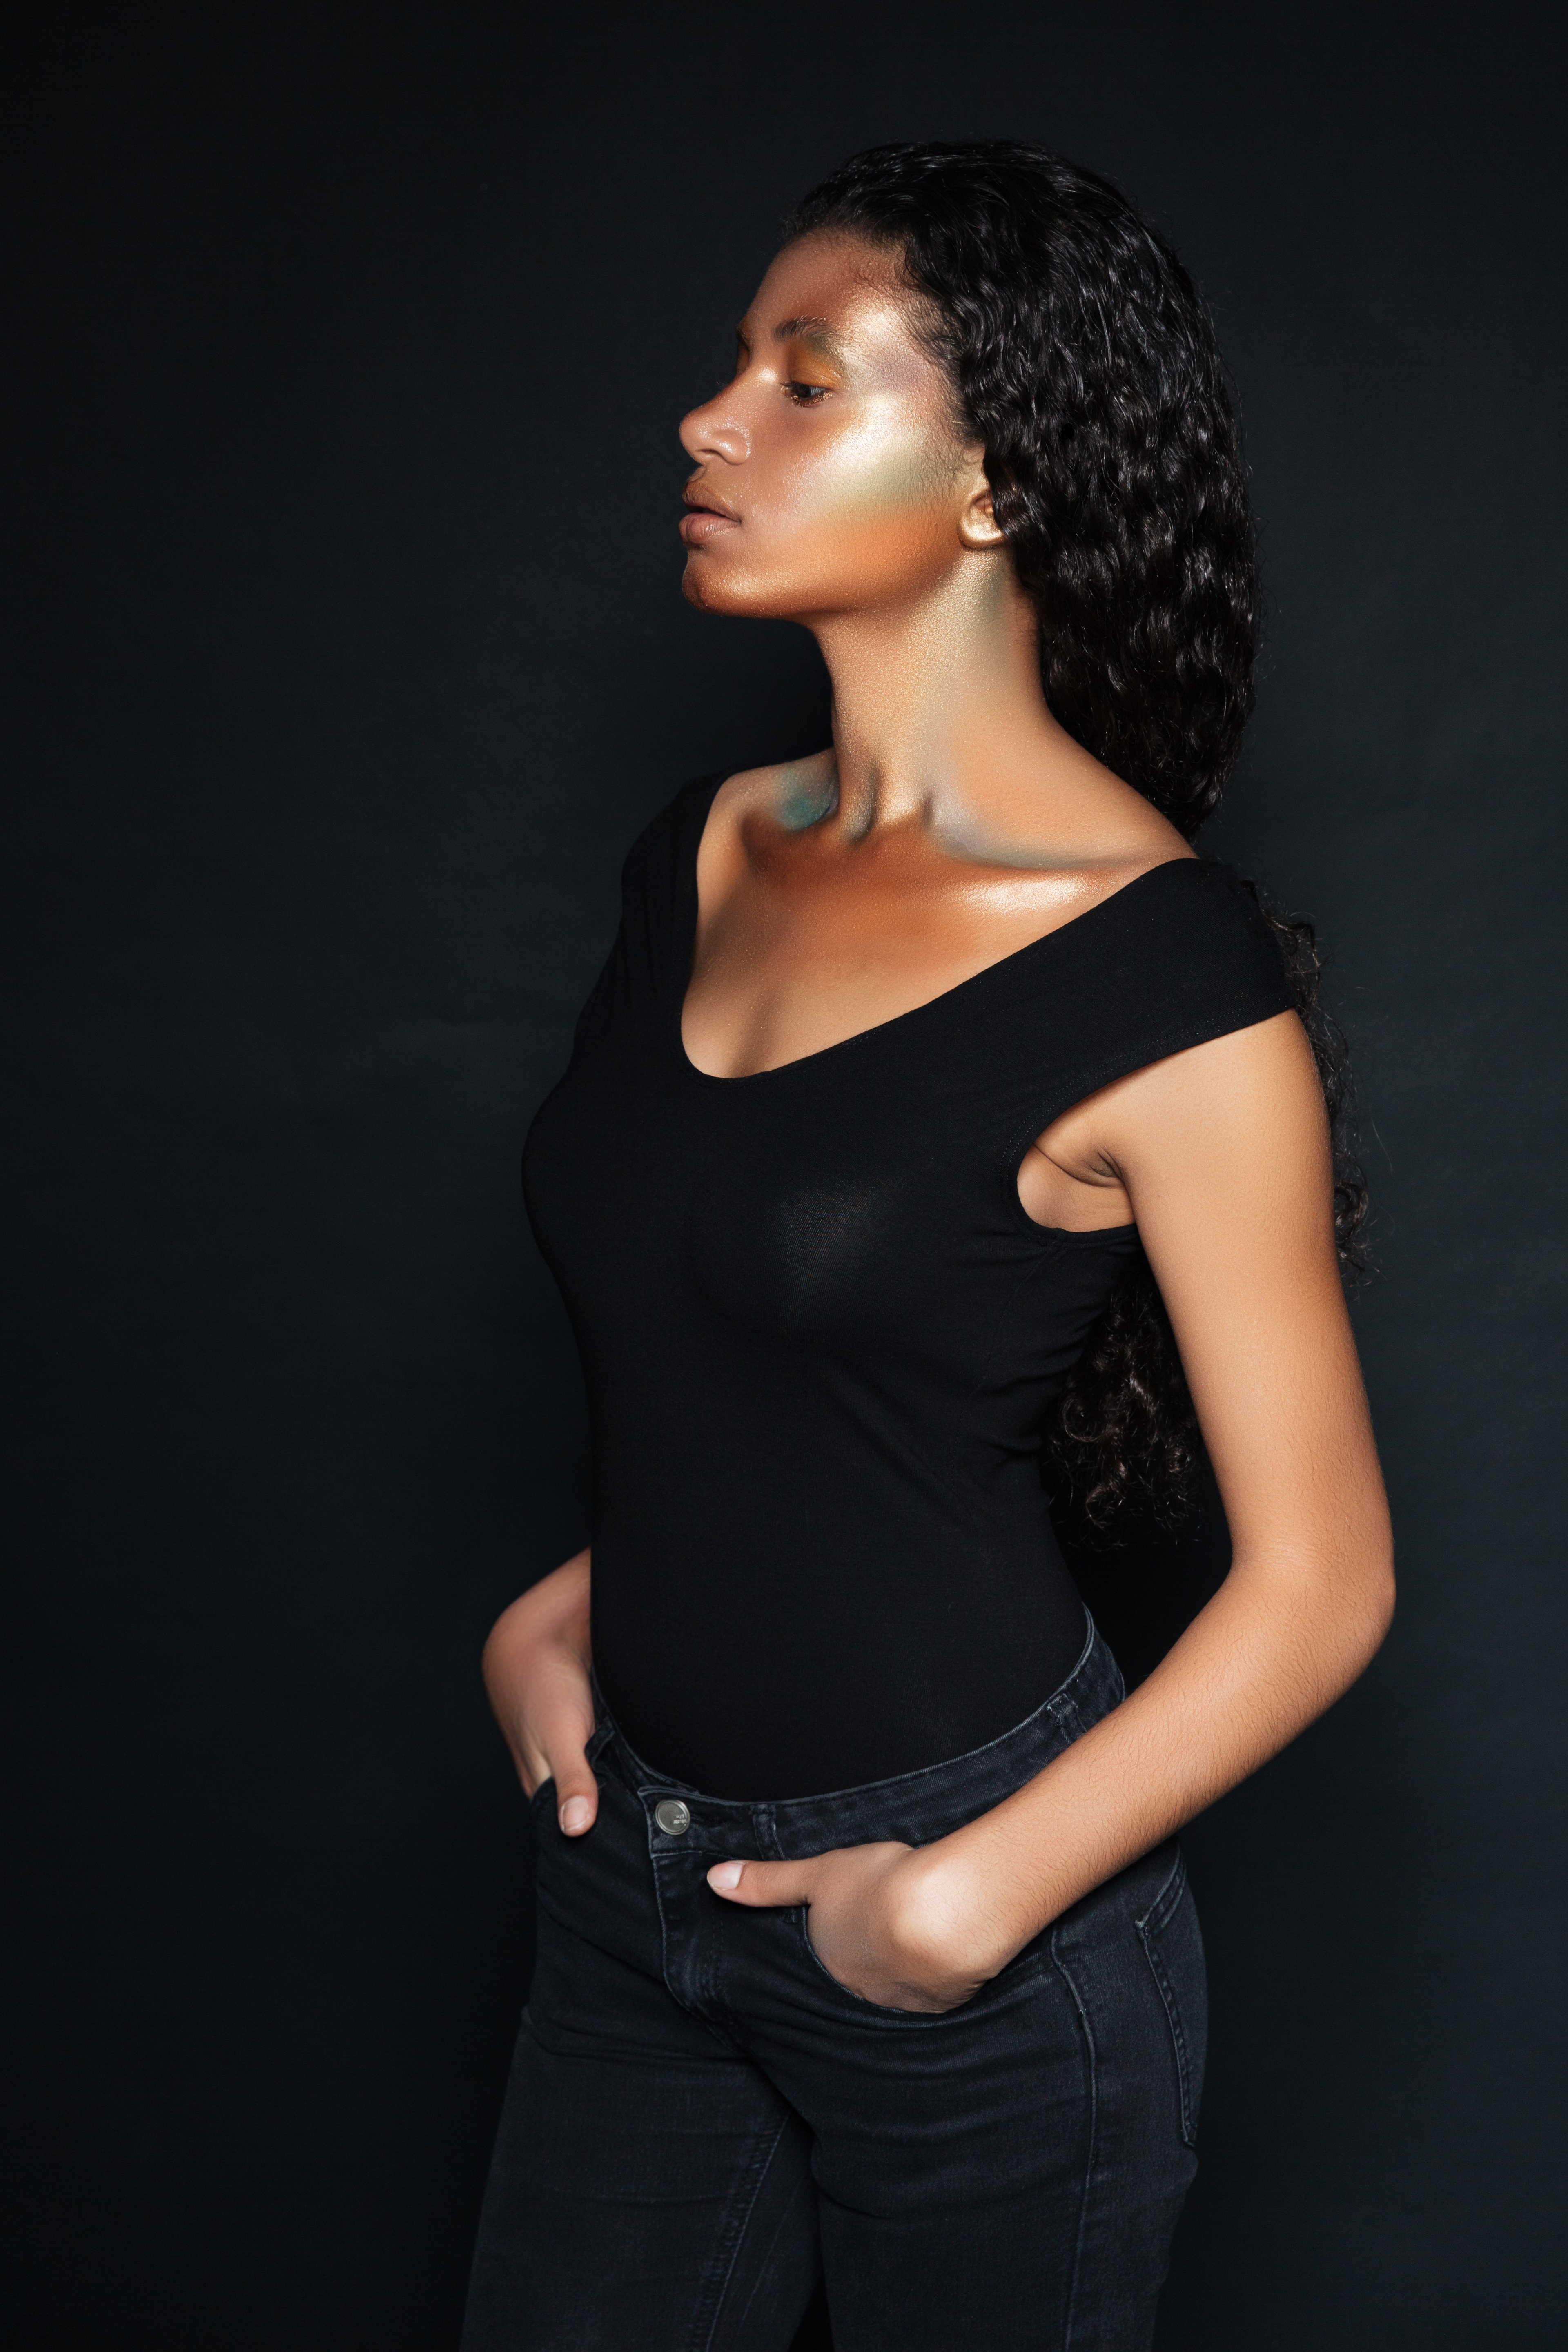 Profile of beautiful african american young woman standing over black background